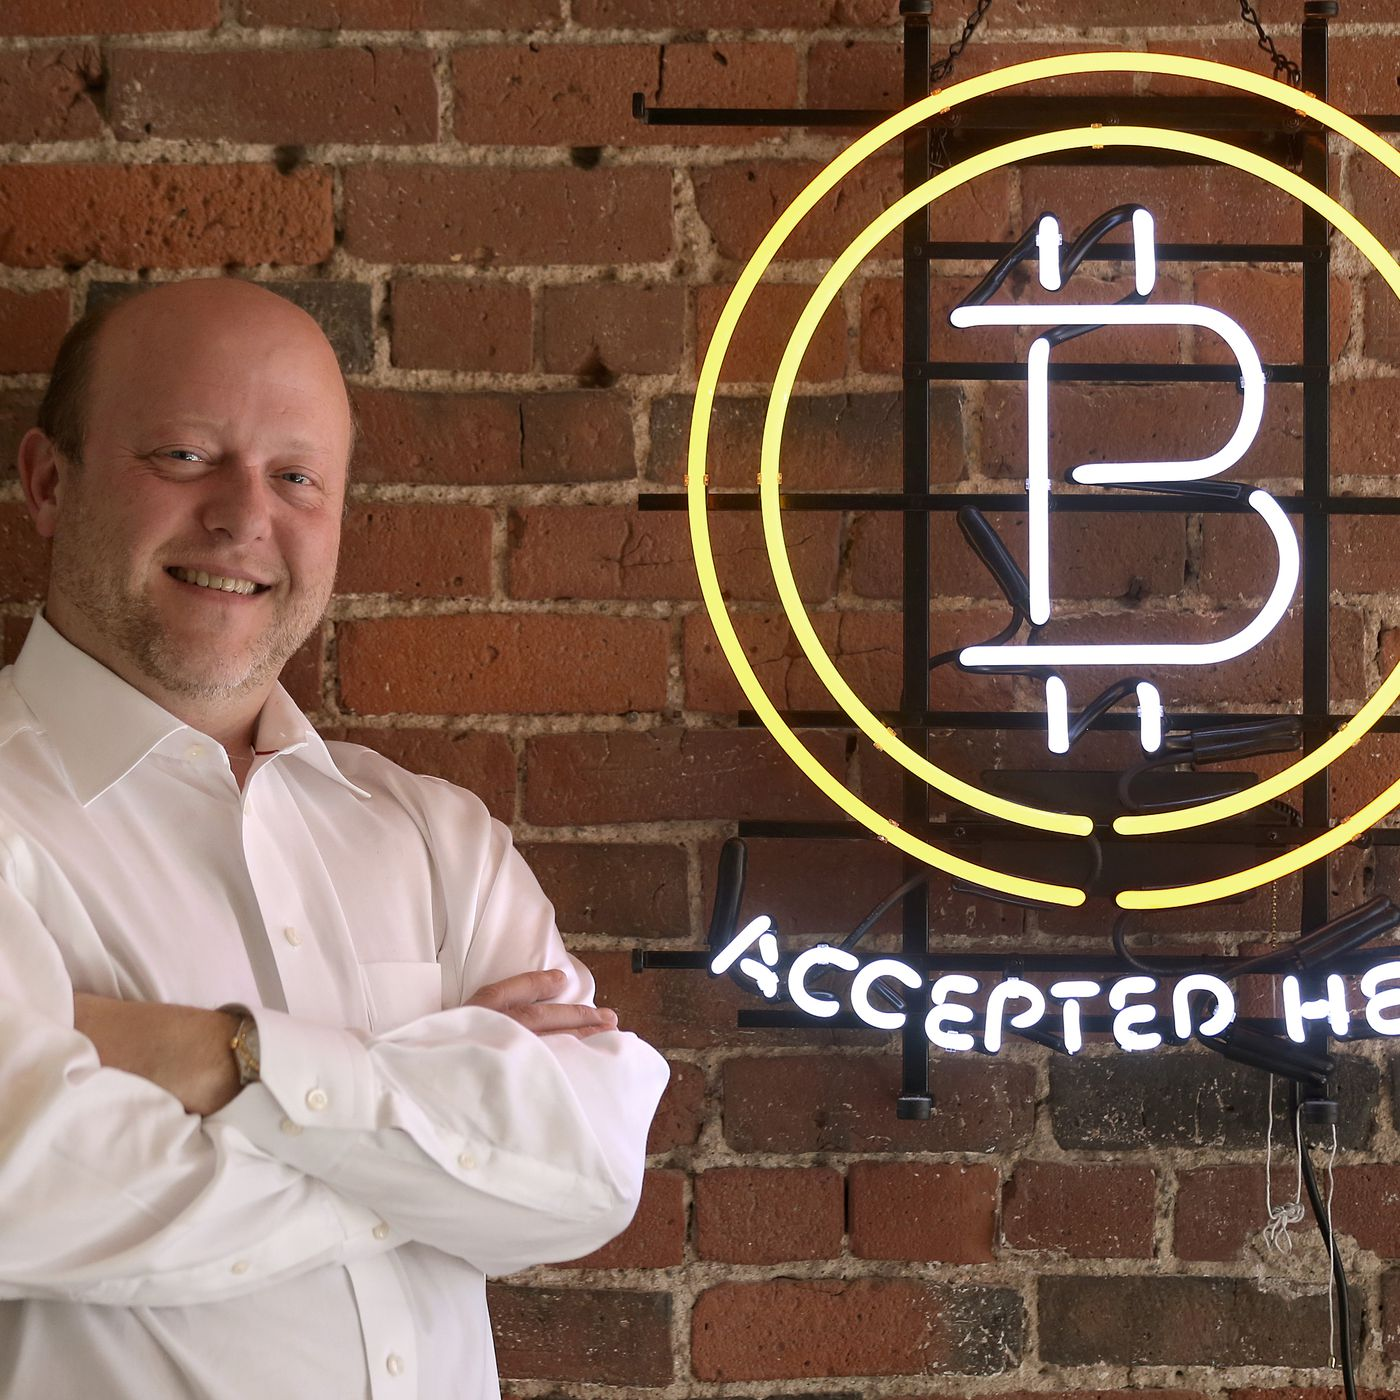 bitcoin jeremy allaire)